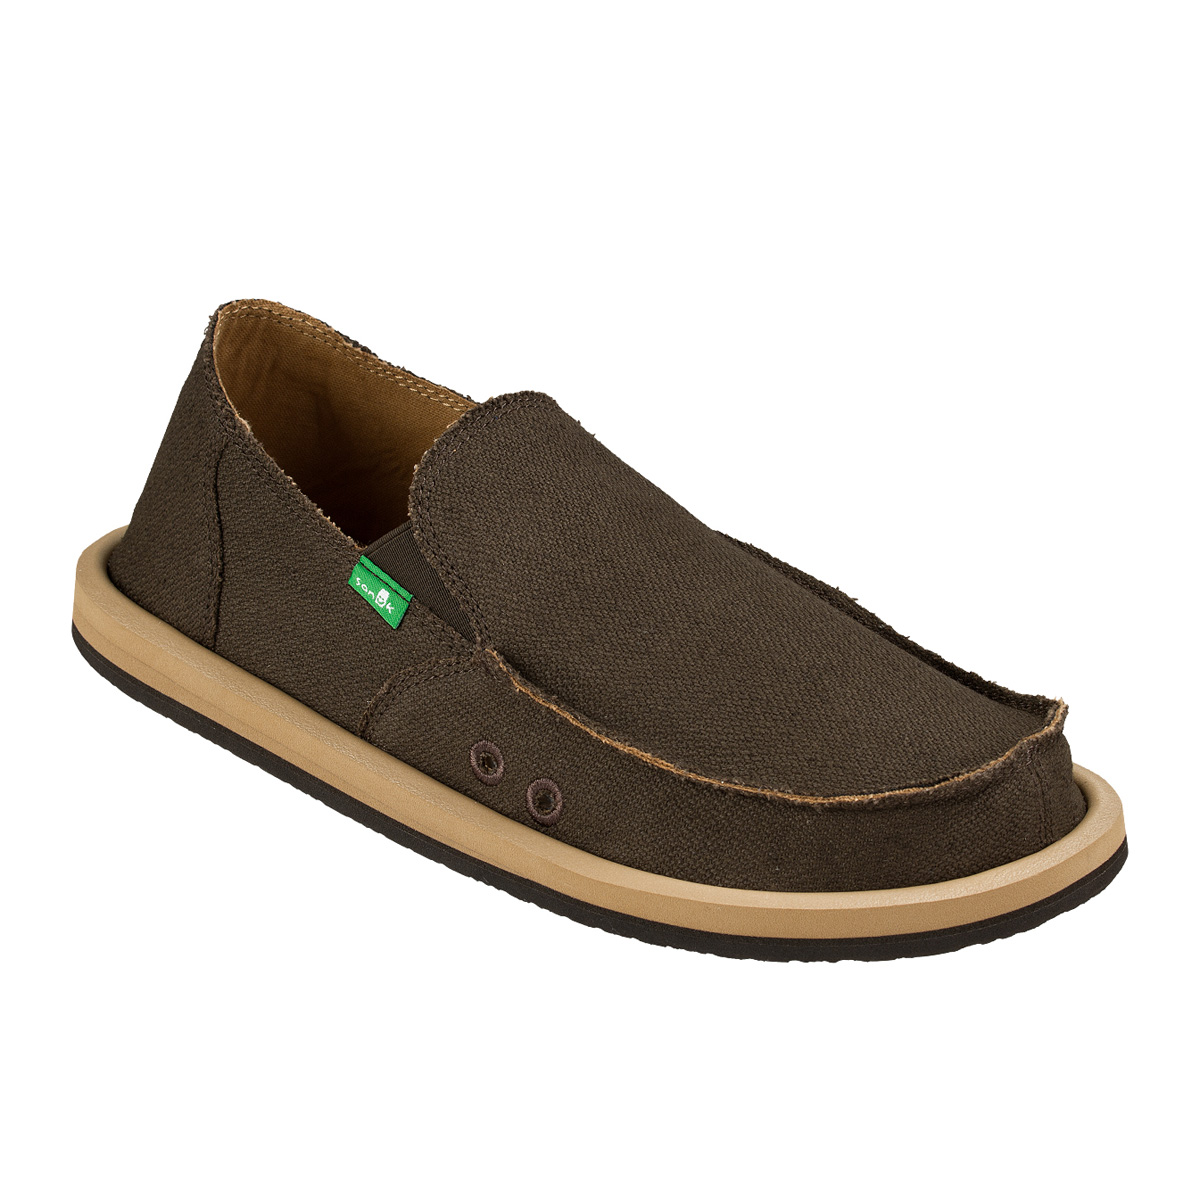 Sanuk Men's Hemp